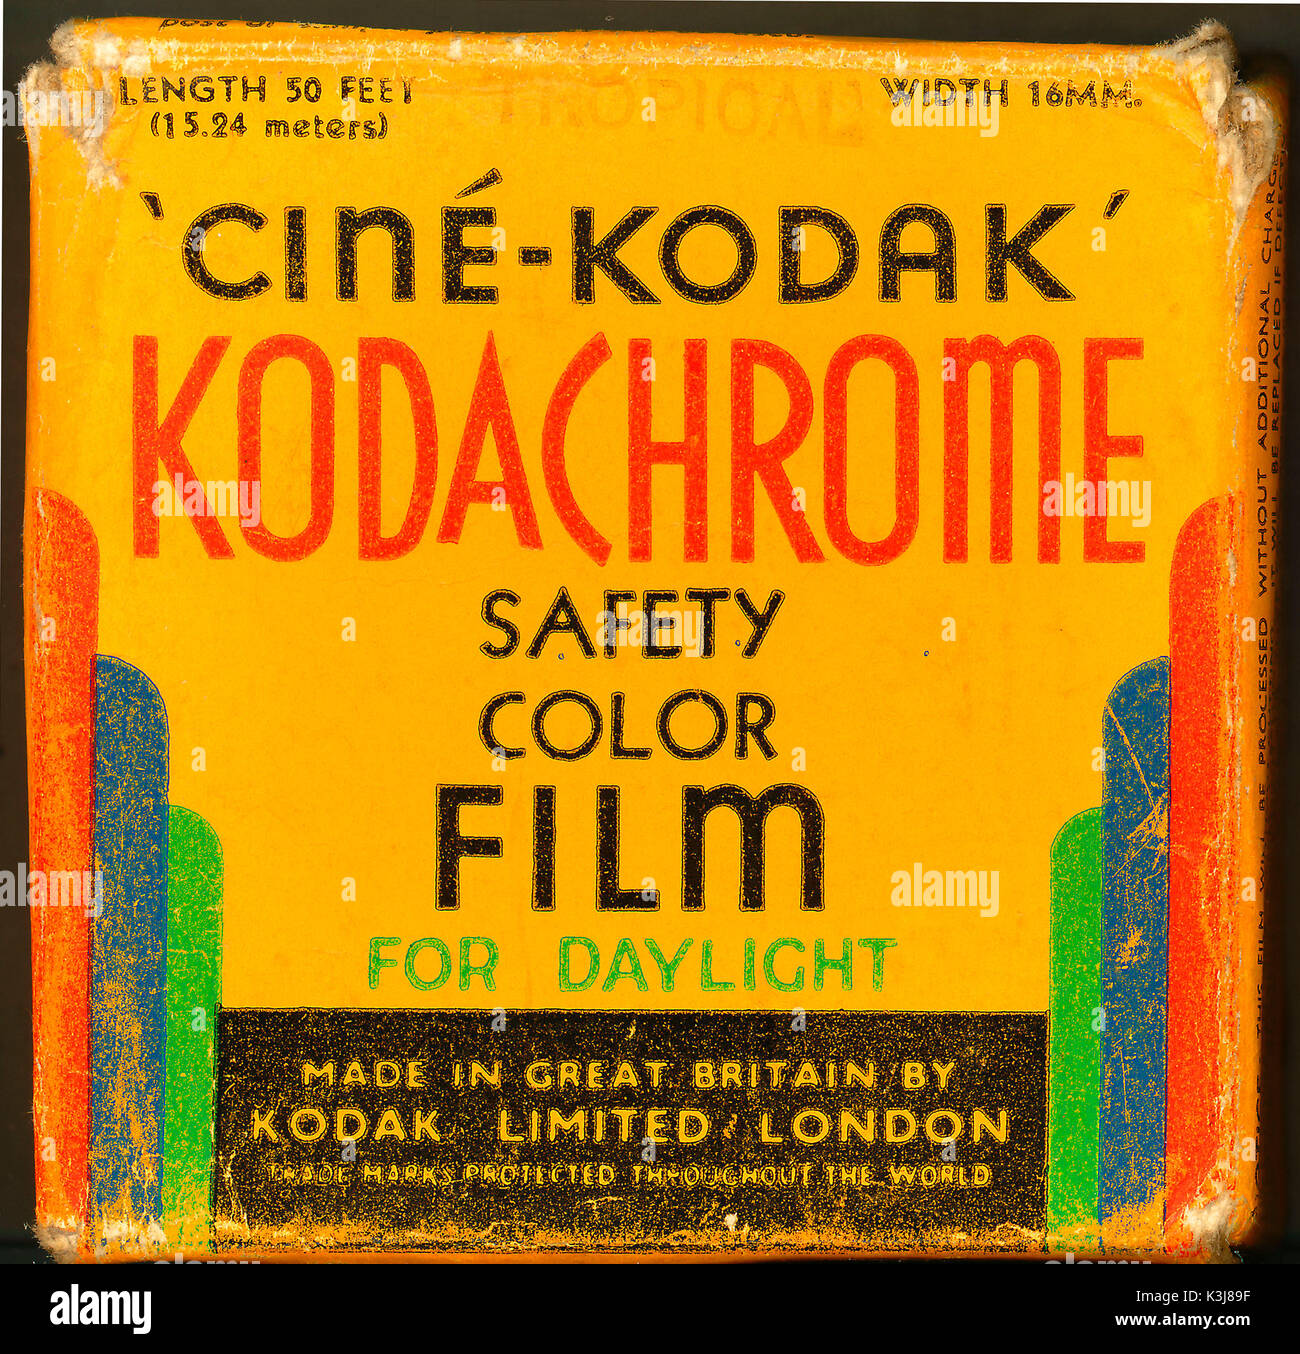 6540 Best Images About 1 Kodachrome Vintage Color On: Kodachrome Movie Film Stock Photos & Kodachrome Movie Film